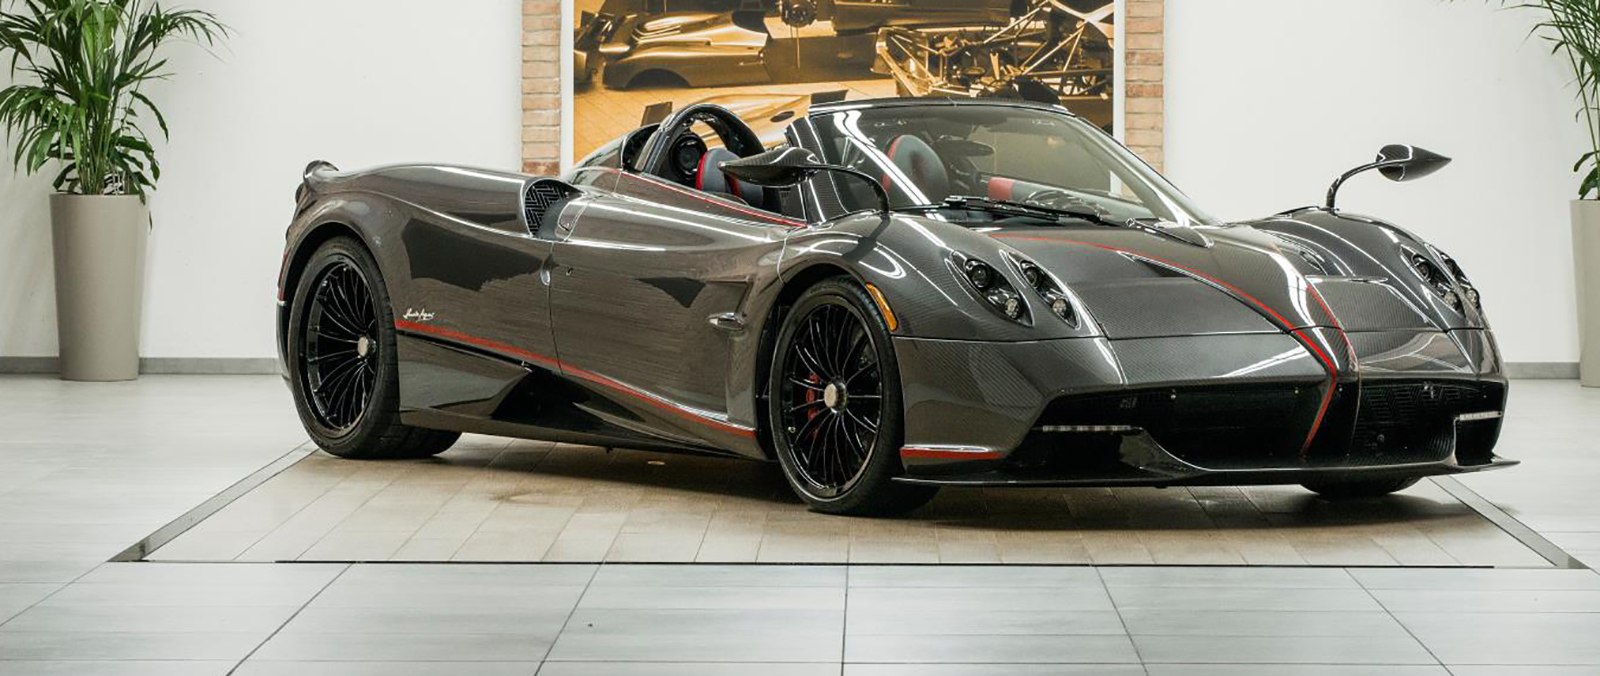 Pagani Huayra Roadster met soft top